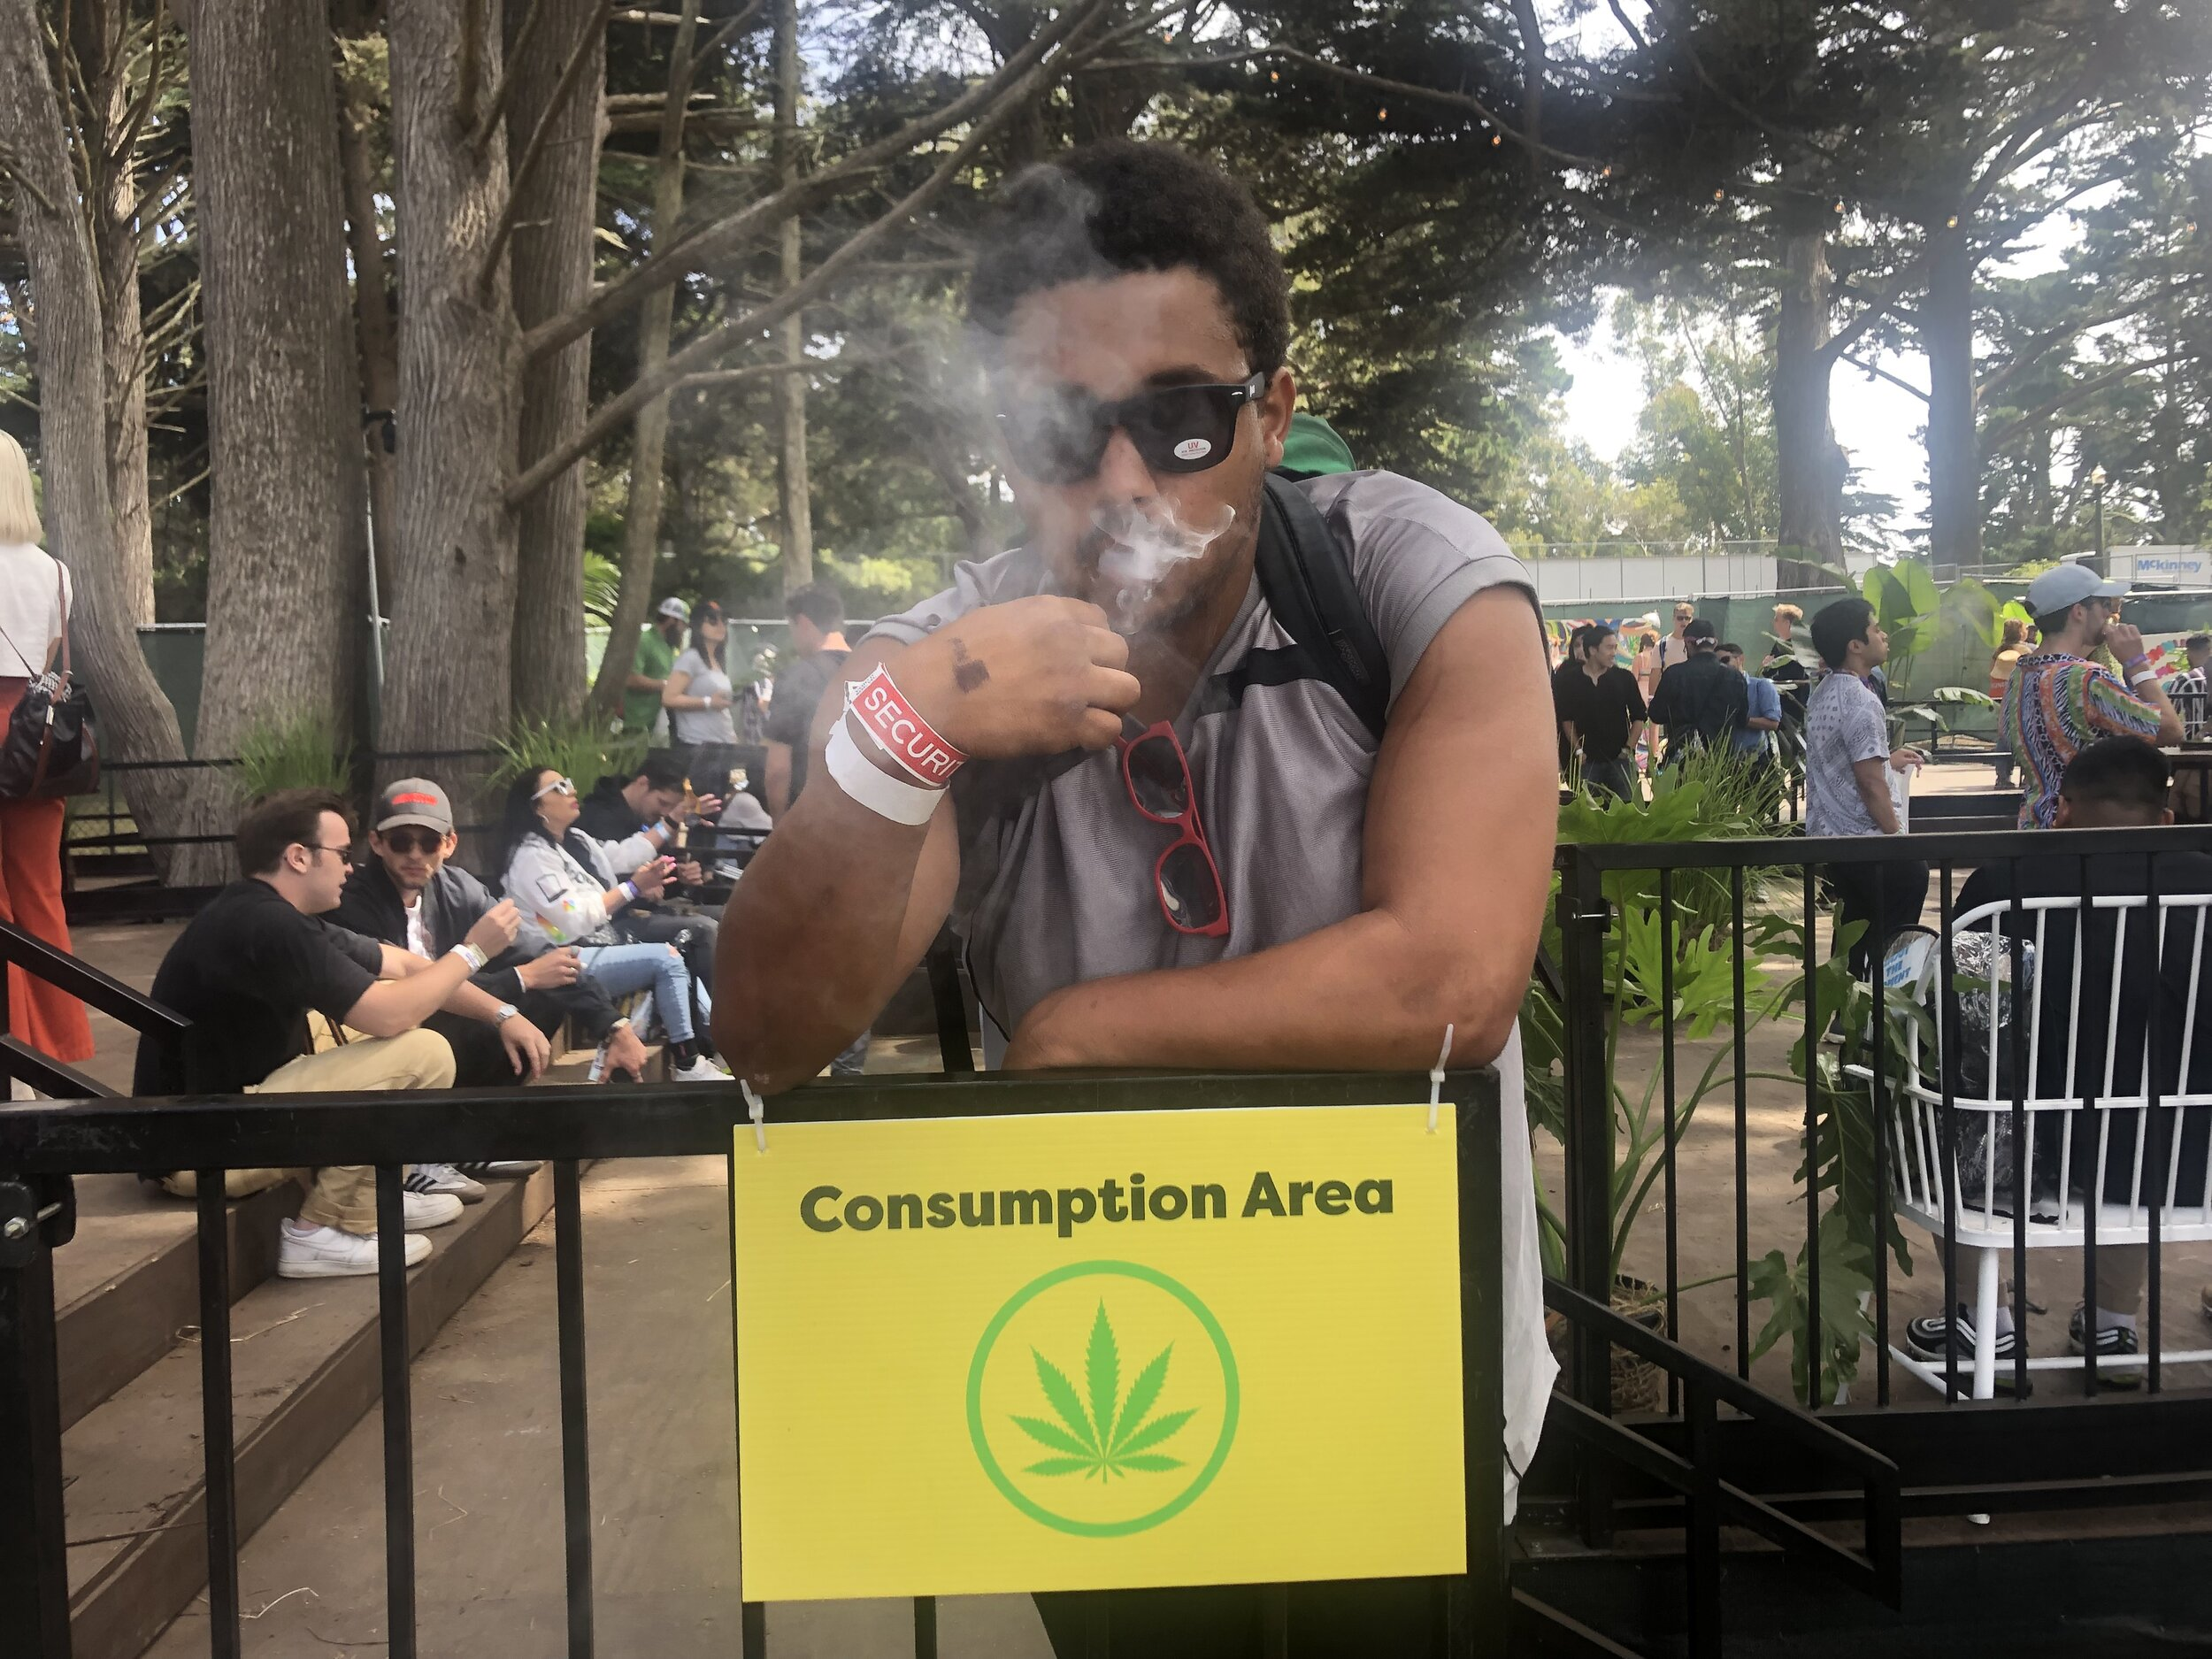 For the first time, Outside Lands attendees could purchase and consume cannabis inside the festival.